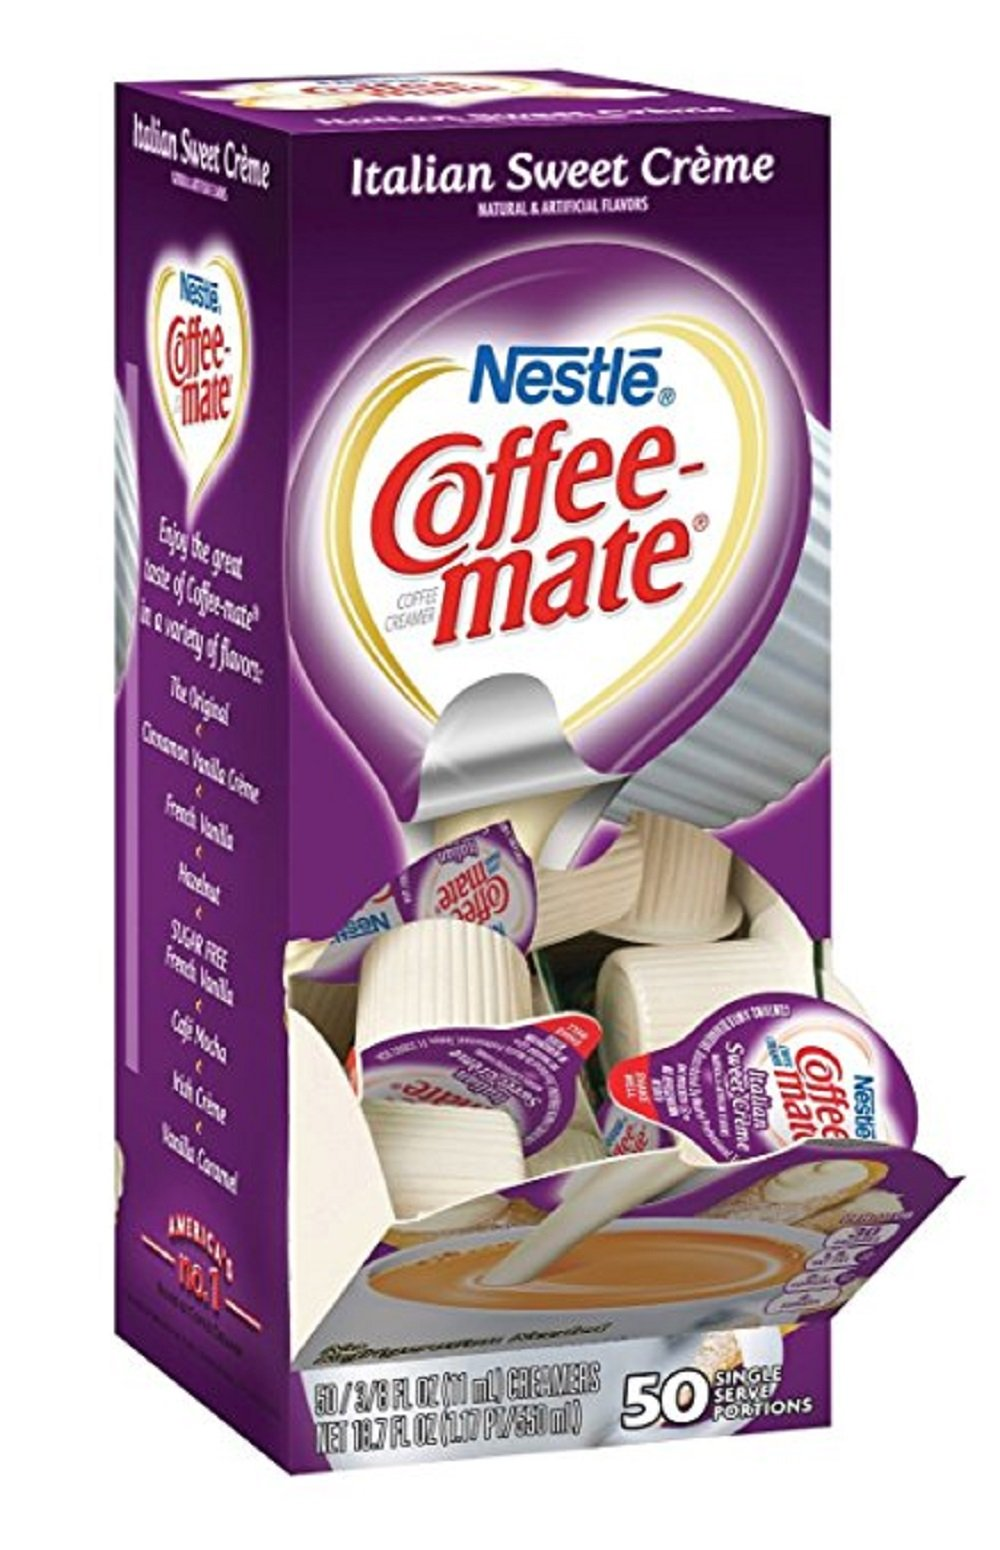 Coffee-mate Coffee Creamer, Italian Sweet Creme Liquid Singles, 50 Count (Pack of 2)